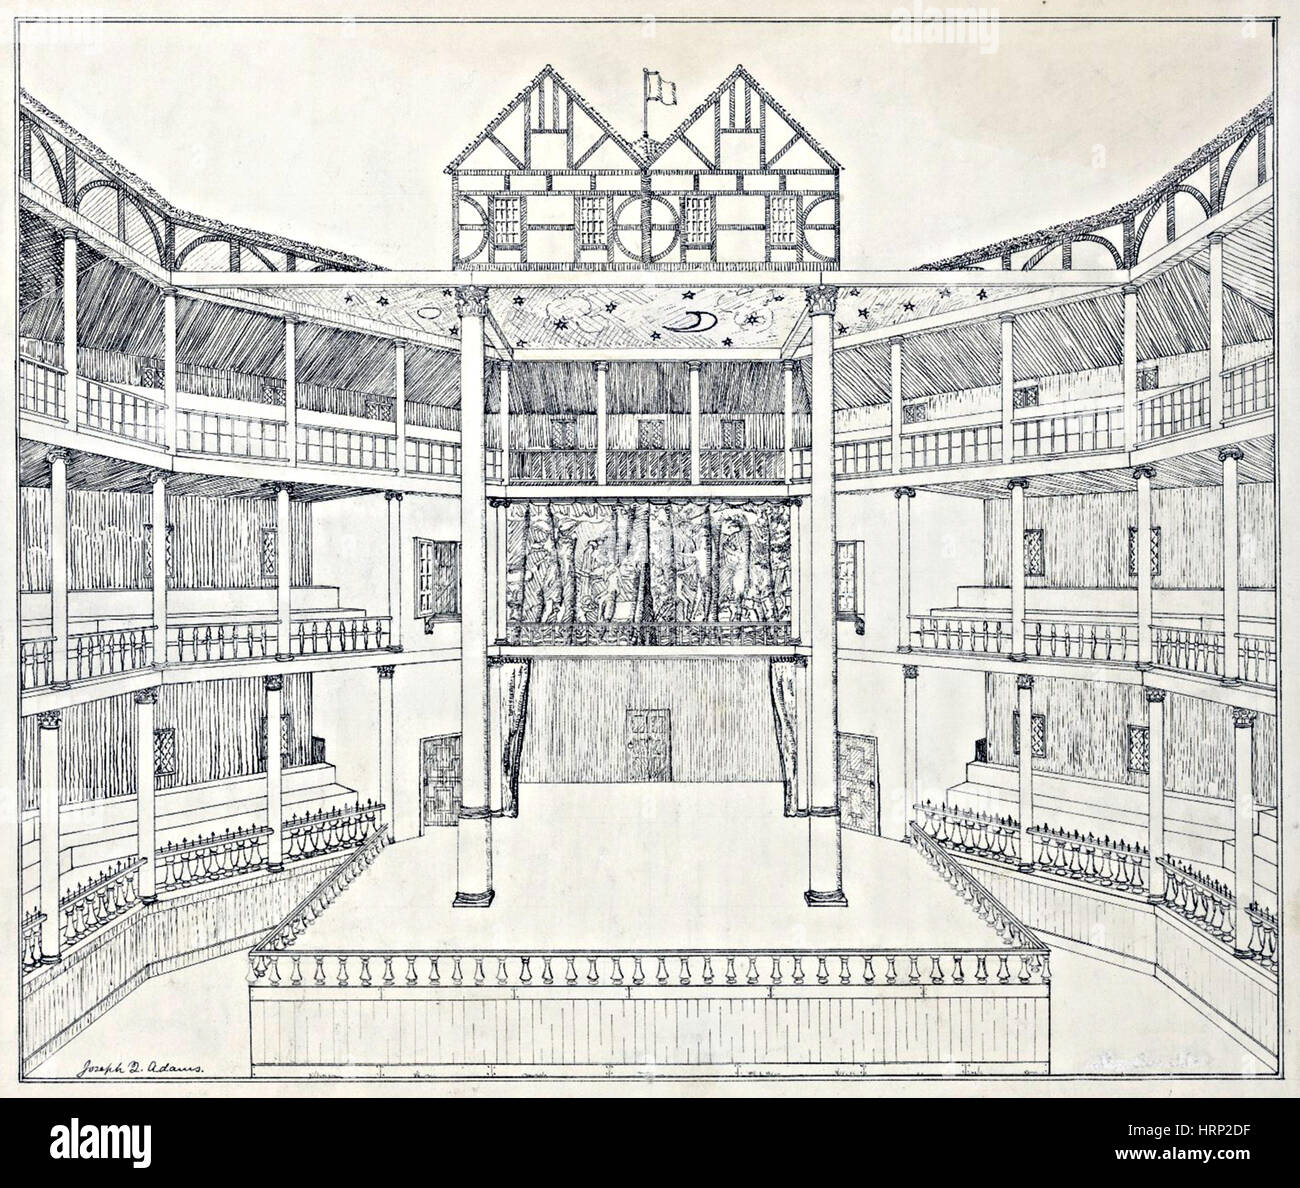 shakespeare 39 s globe theatre reconstruction stock photo. Black Bedroom Furniture Sets. Home Design Ideas